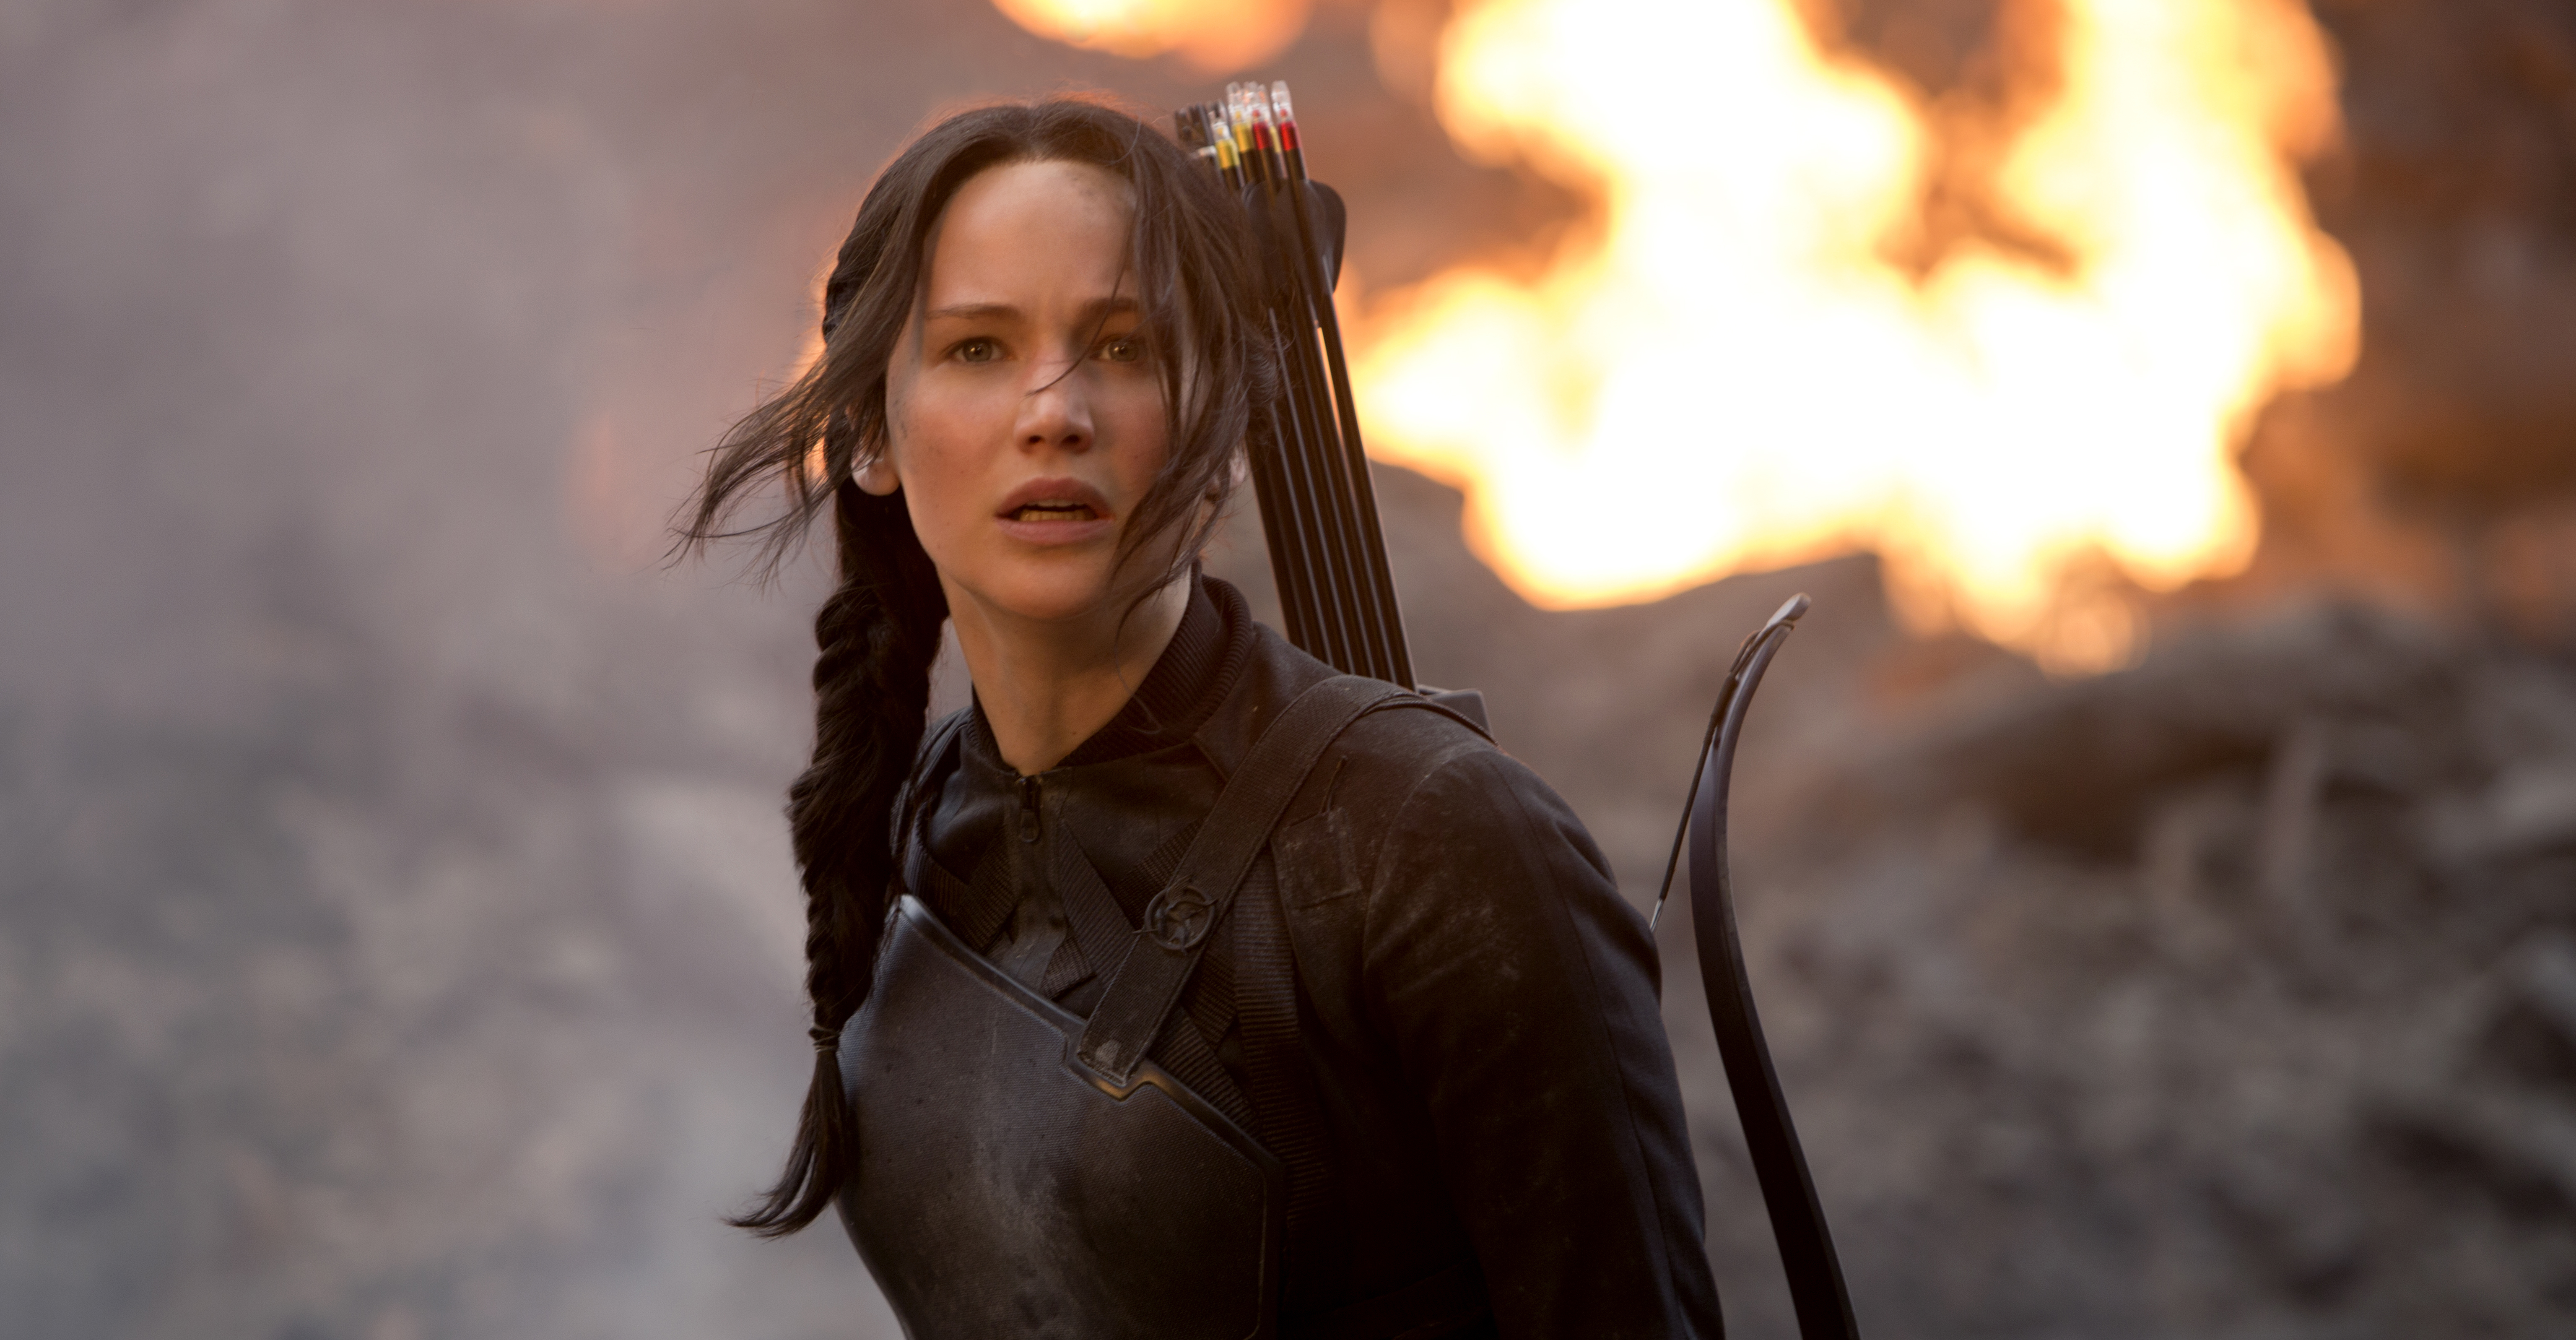 the hunger games: mockingly - part 1